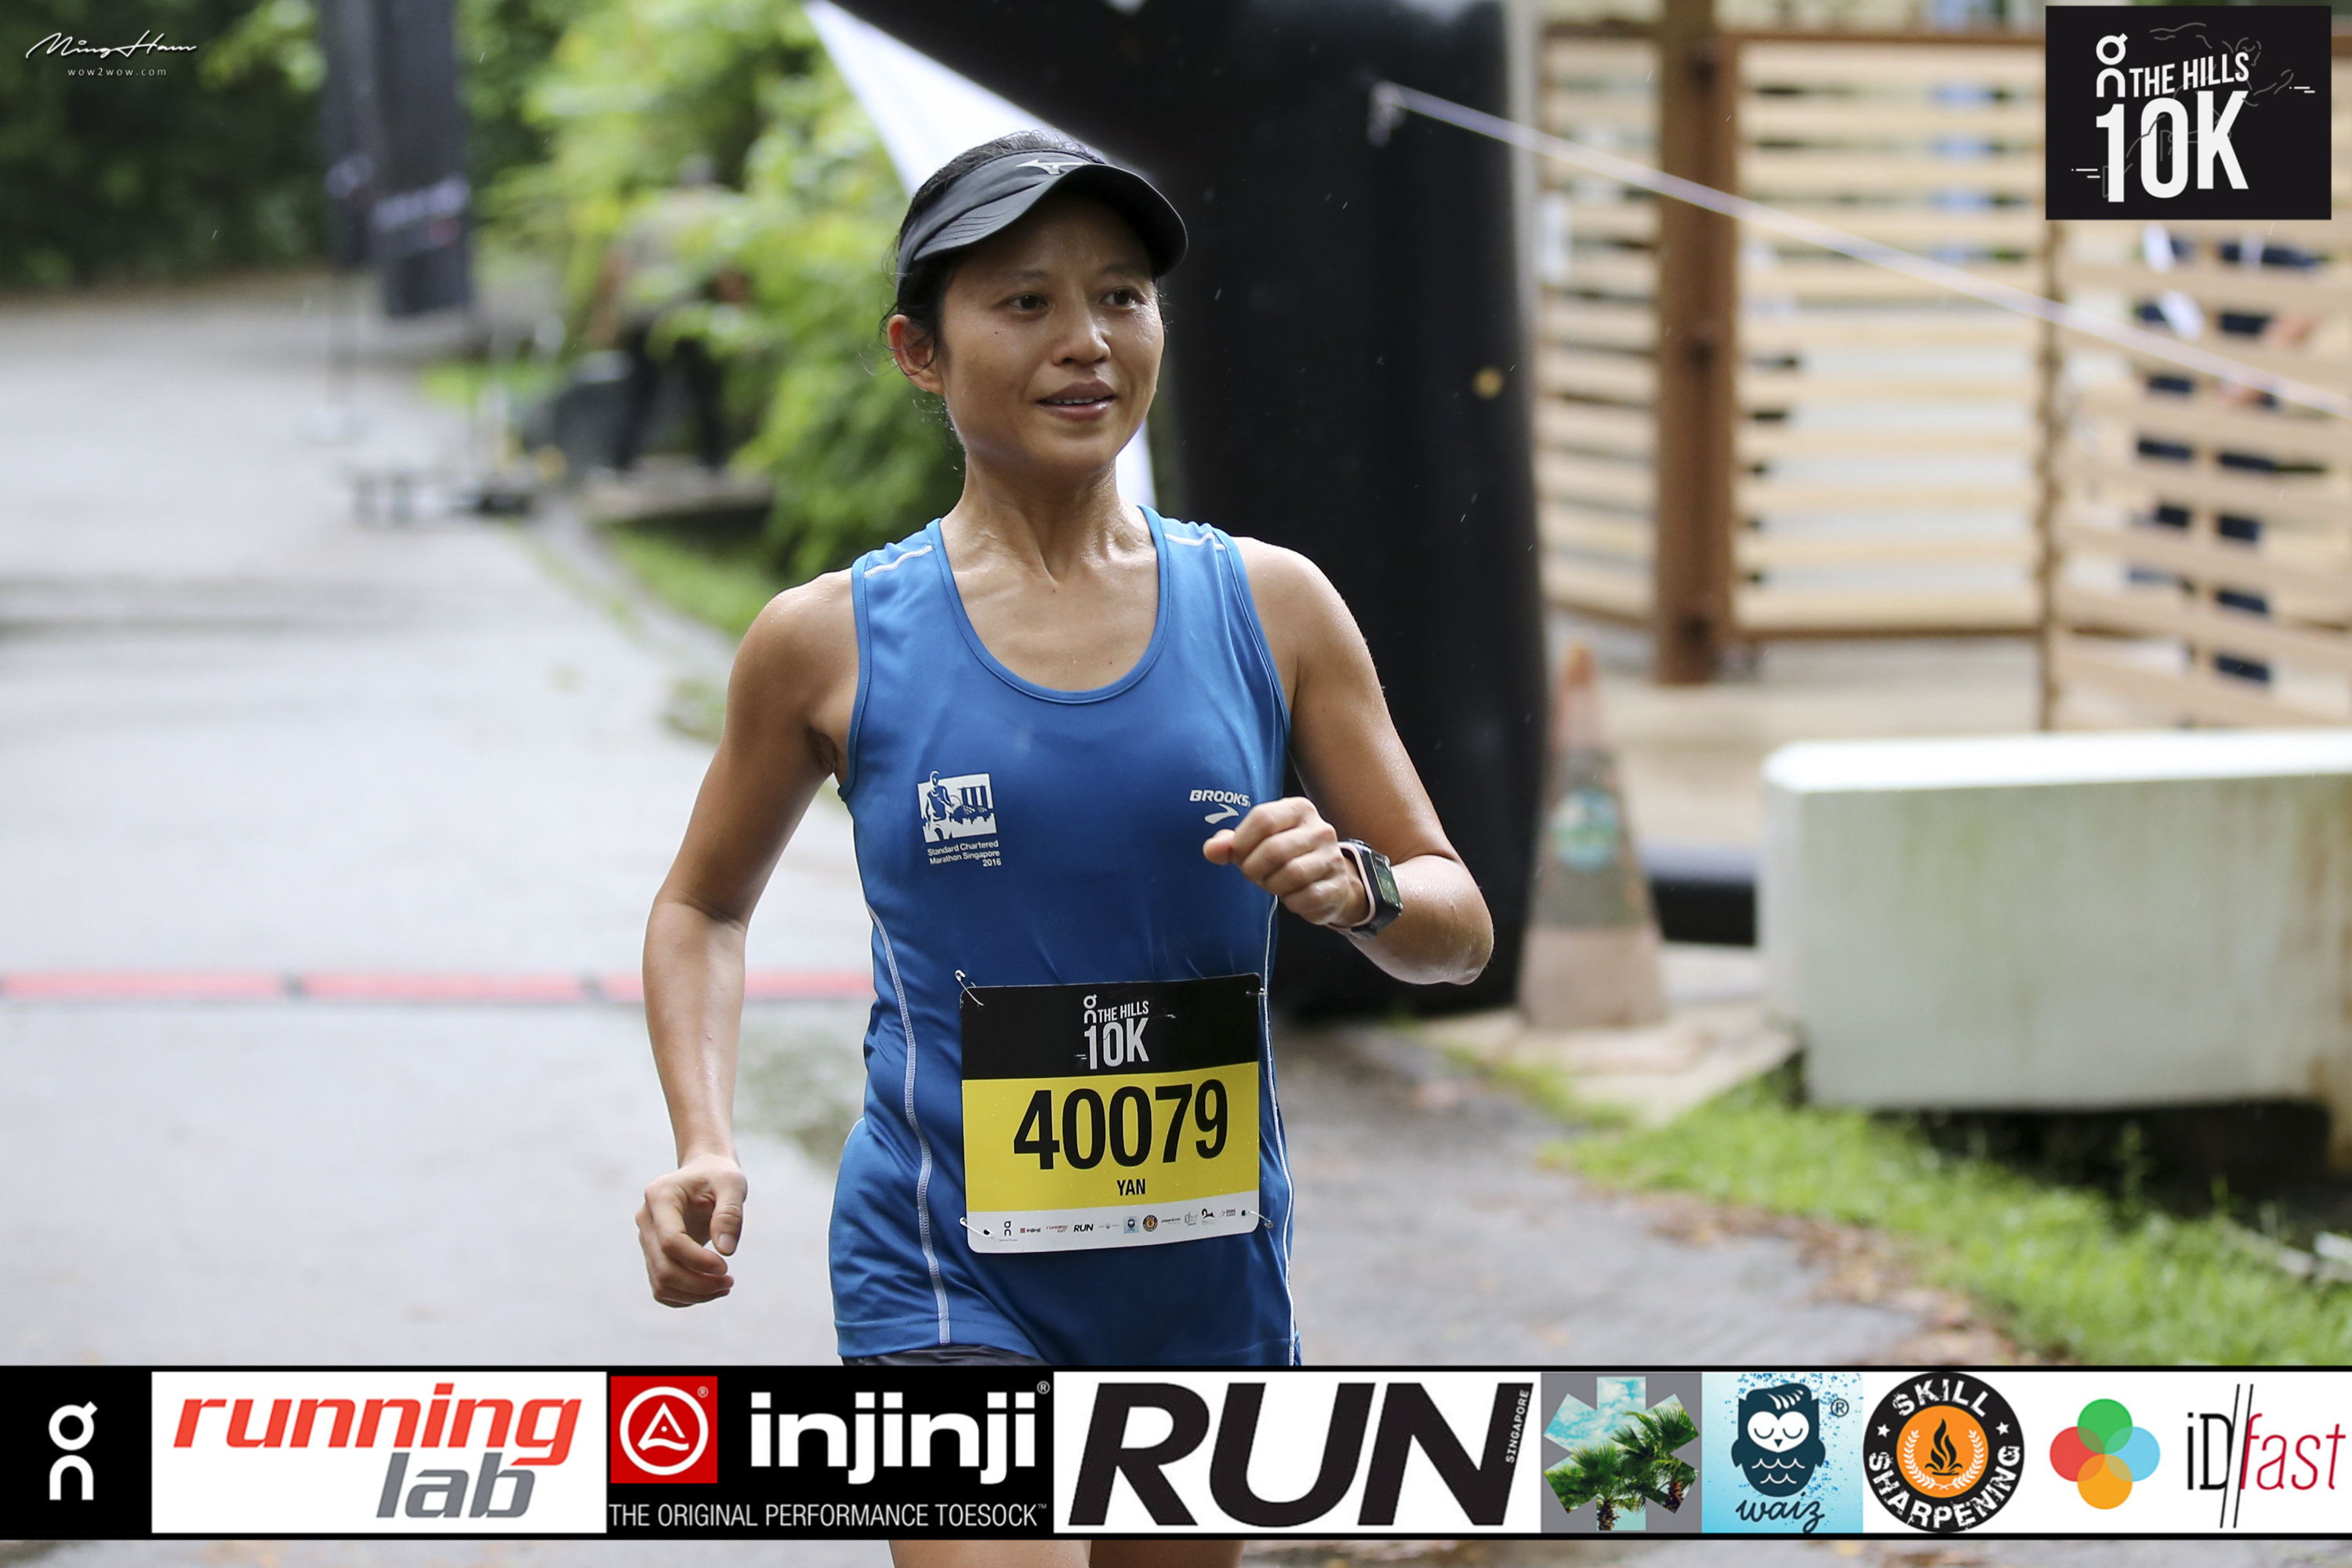 2018_On The Hills 10K_AndyCF_3265